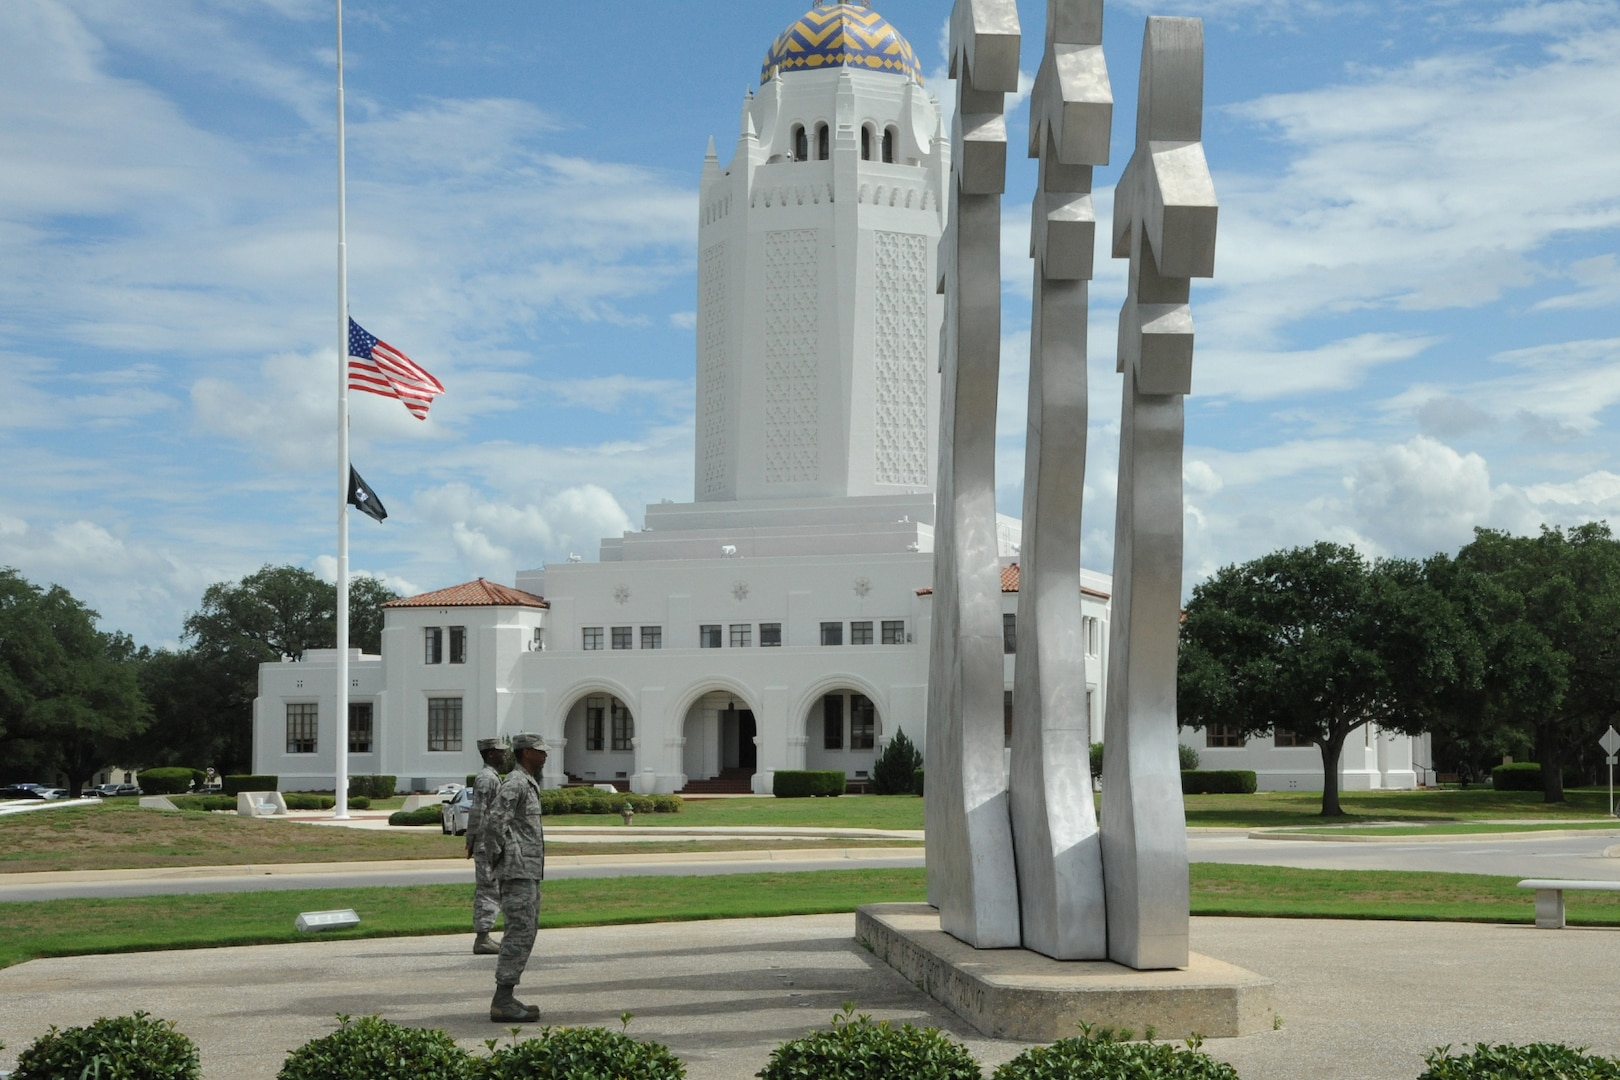 Tech. Sgt. Gilchrist and Staff Sgt. Gunter stand watch over the Missing Man Monument at JBSA-Randolph during the POW/MIA ceremony Sept. 18. (U.S. Air Force photo by Don Lindsey)